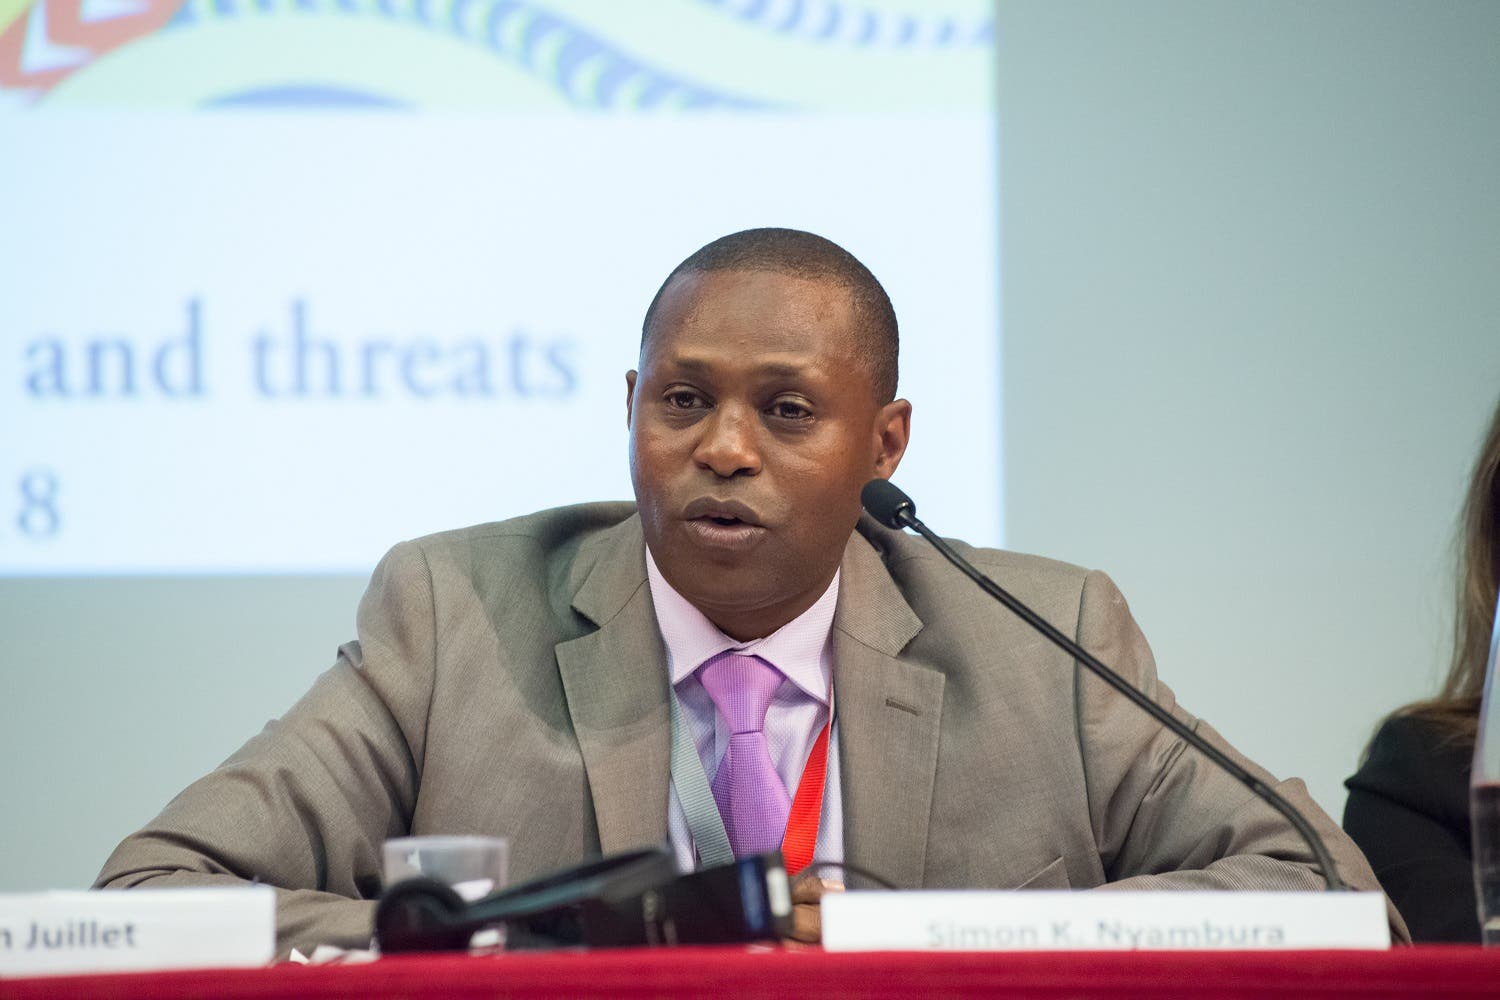 Simon K. Nyambura, Director of IGAD Center of Excellence for Preventing and Countering Violence Extremism (ICEPCVE) based in Djibuti